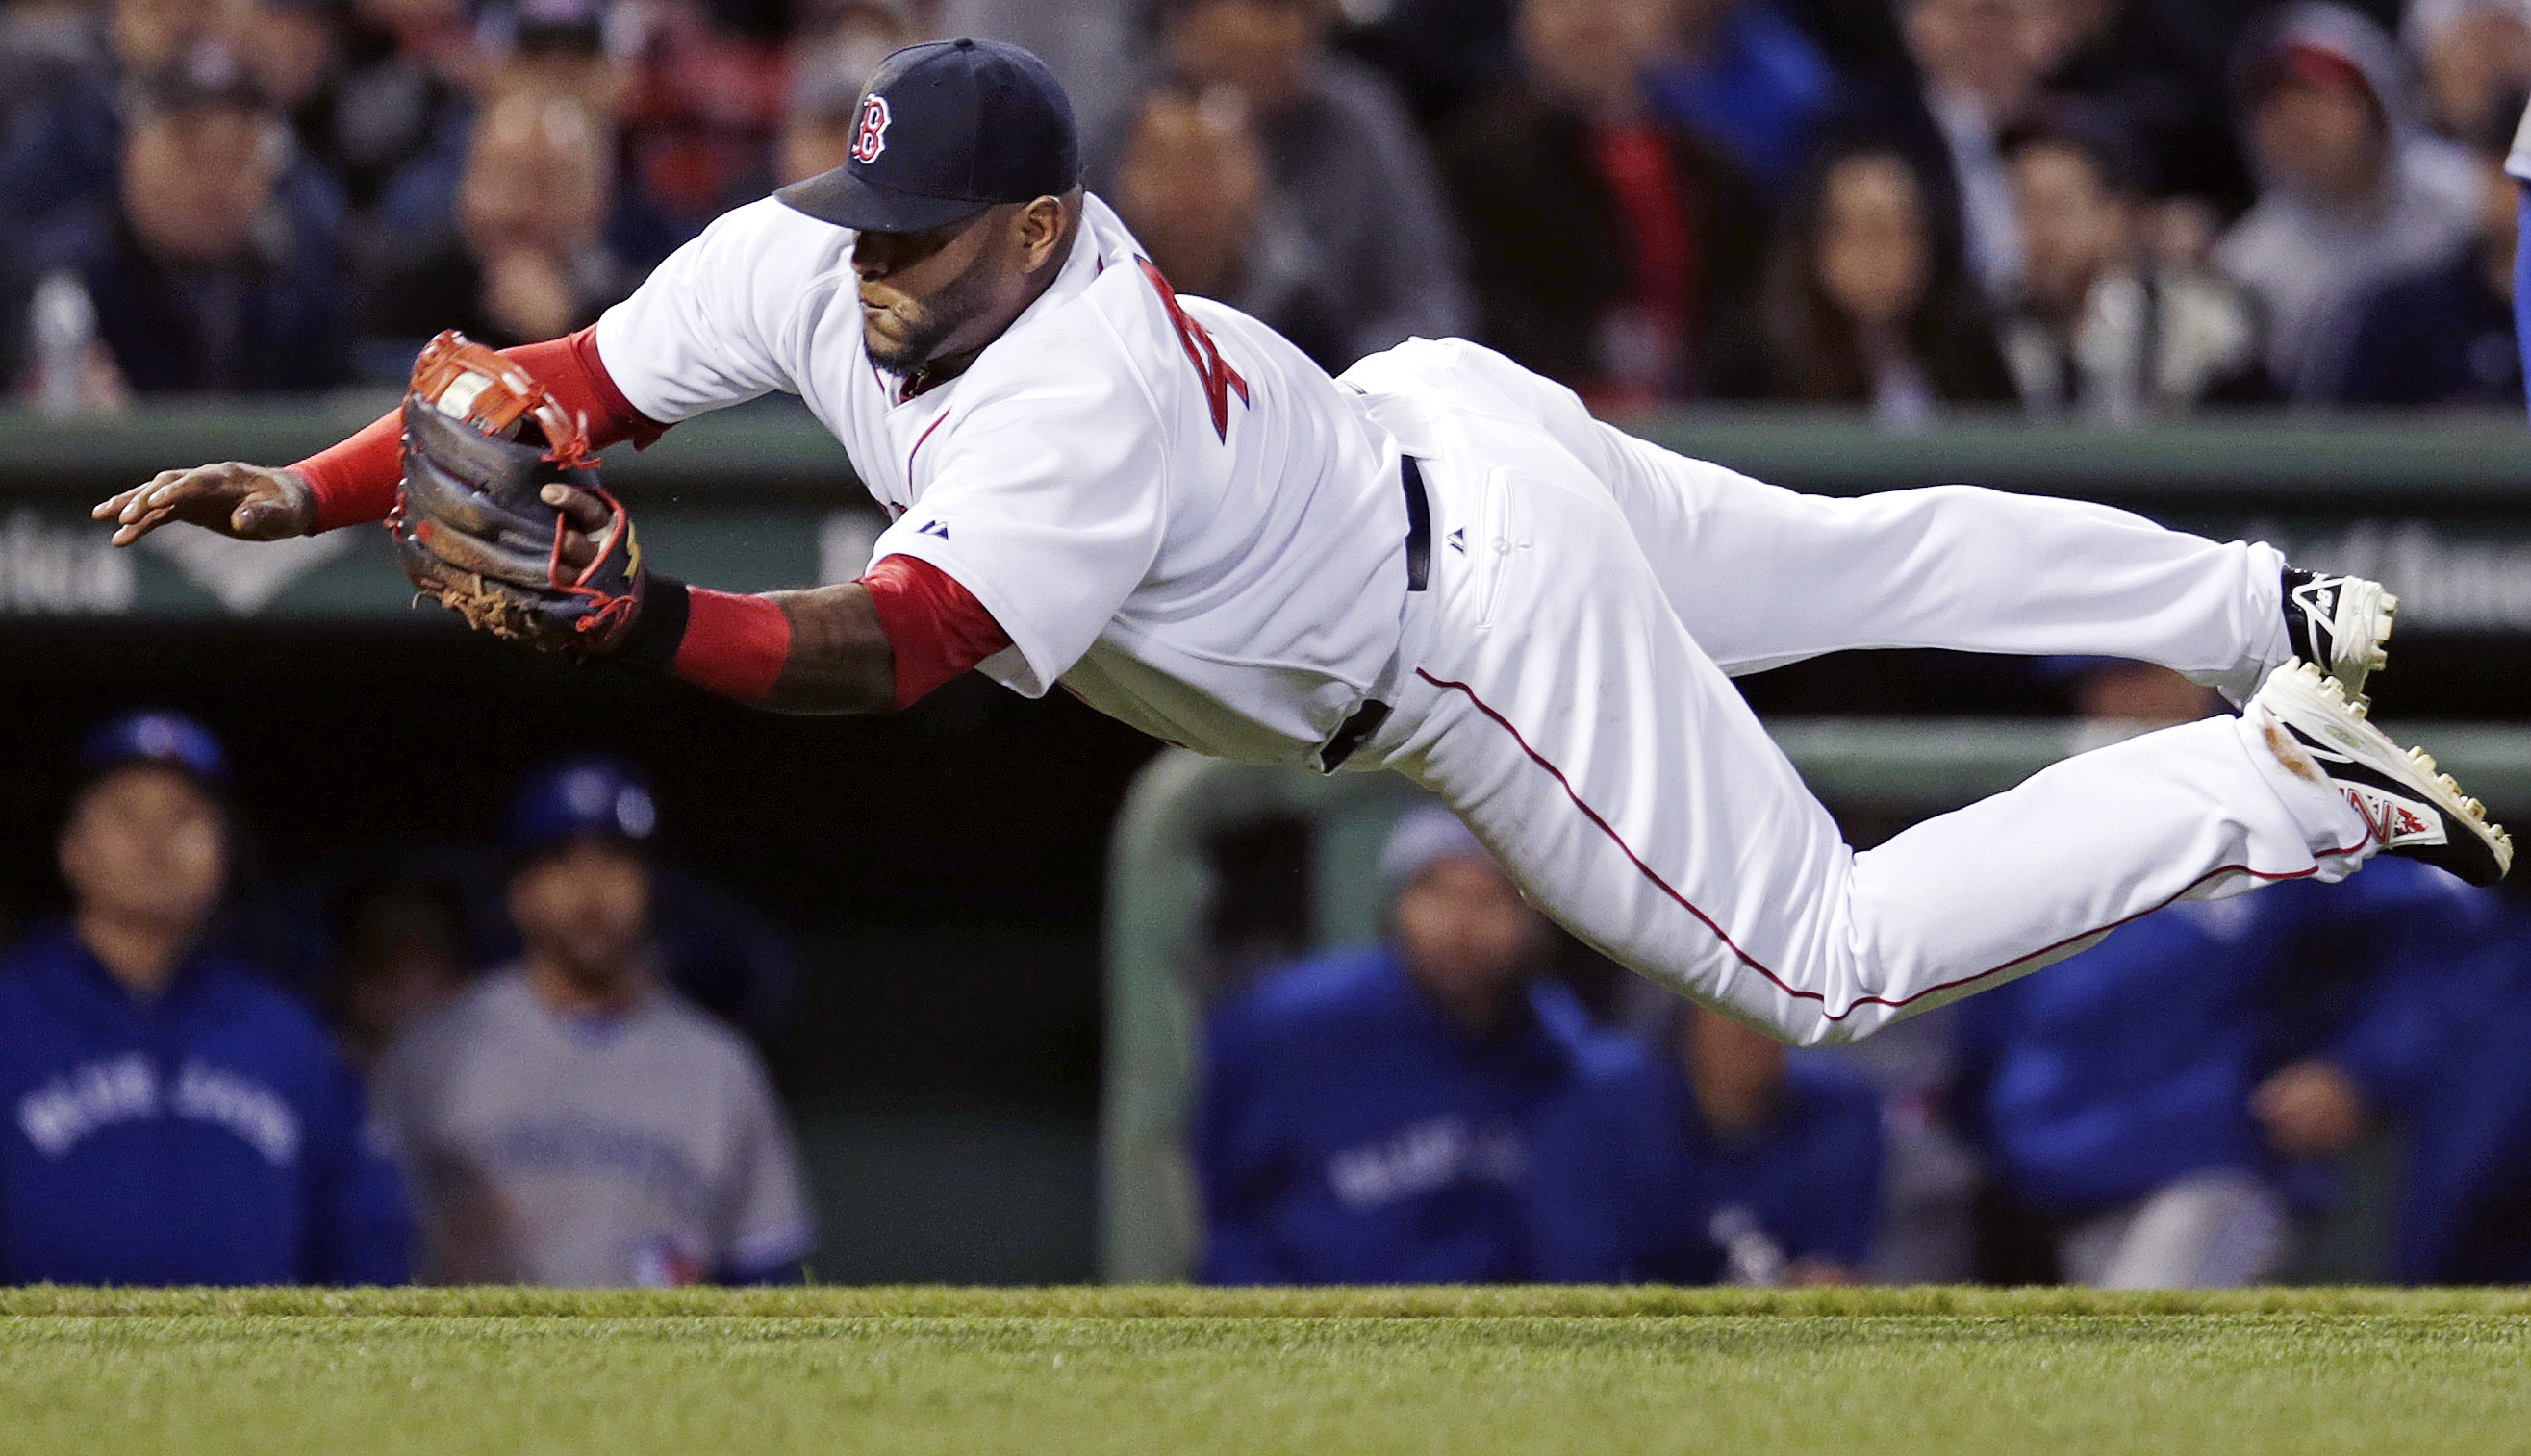 Boston Red Sox third baseman Pablo Sandoval makes a diving catch on a fly out by Toronto Blue Jays'  Dalton Pompey during the fourth inning of a baseball game at Fenway Park in Boston, Monday, April 27, 2015. (AP Photo/Charles Krupa)